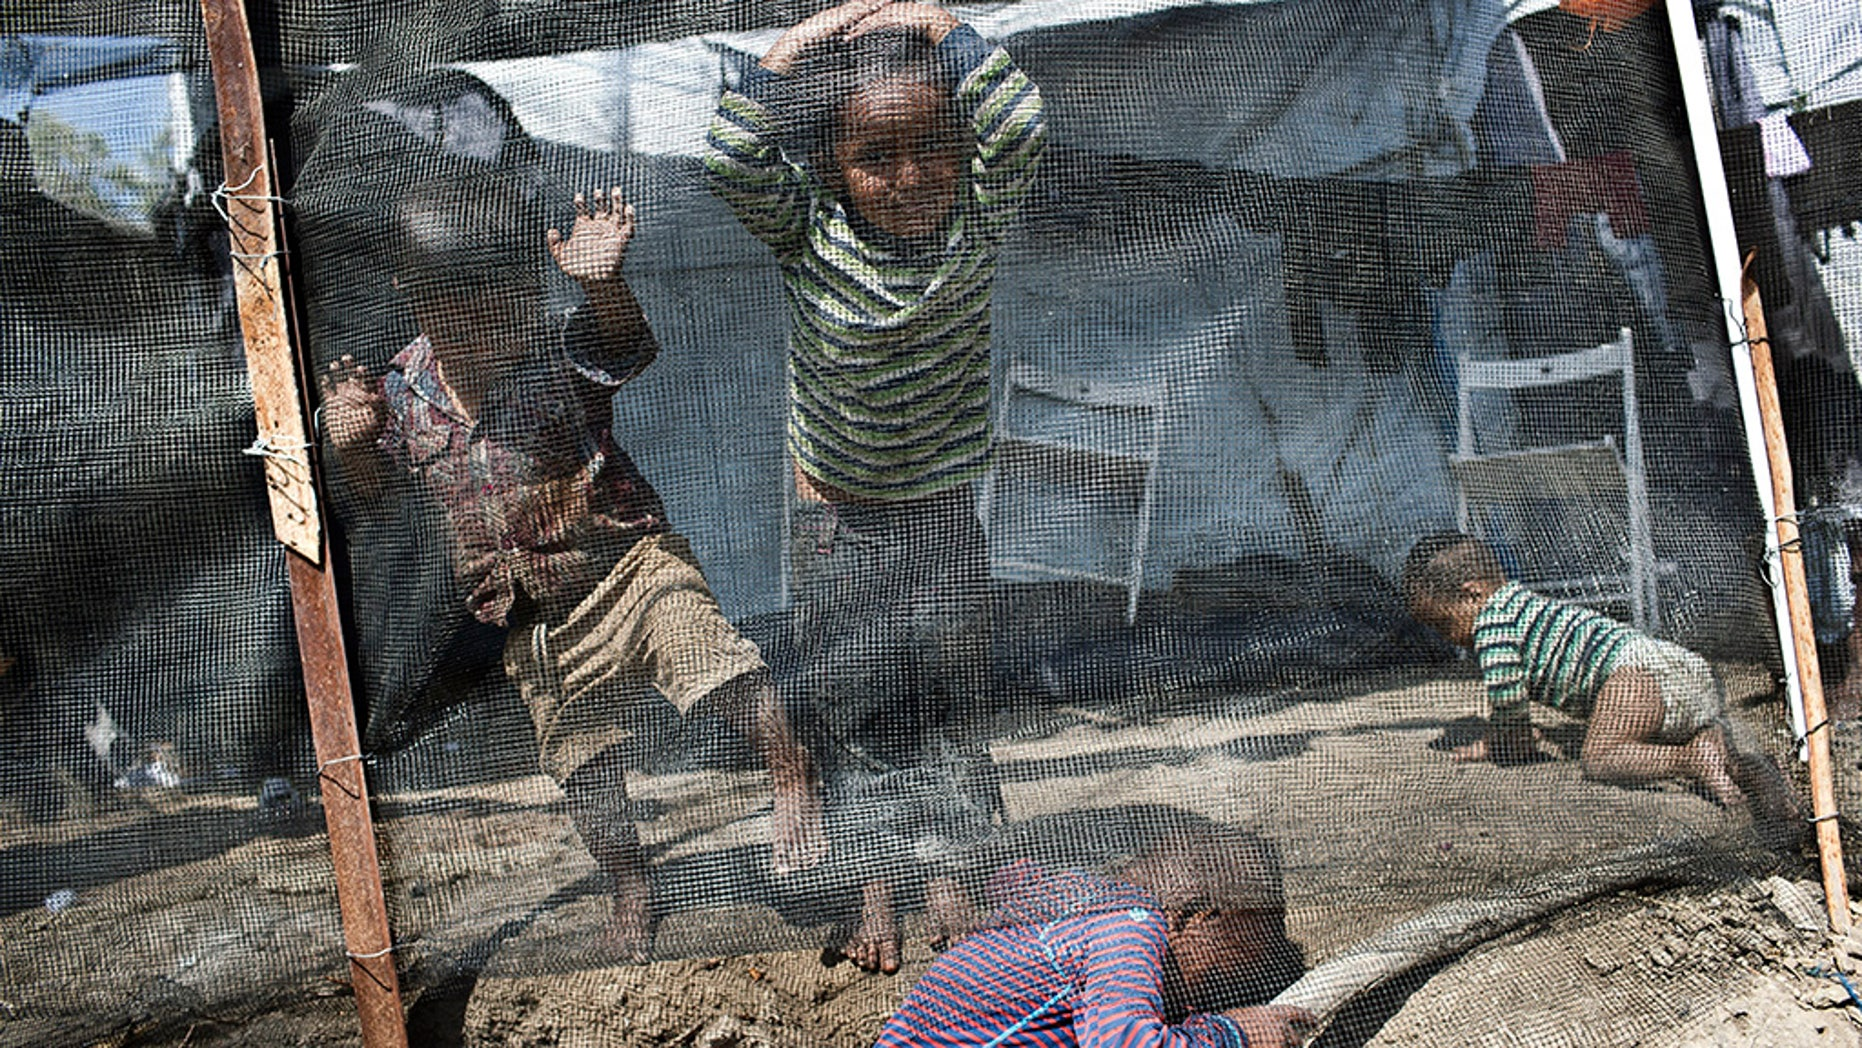 Children play inside the Moria refugee camp on the northeastern Aegean island of Lesbos, Greece. The jammed camp serves as a sober reminder to European leaders that their statistical success in curbing migration into the continent has spawned what the U.N. and others condemn as massive humanitarian failures.